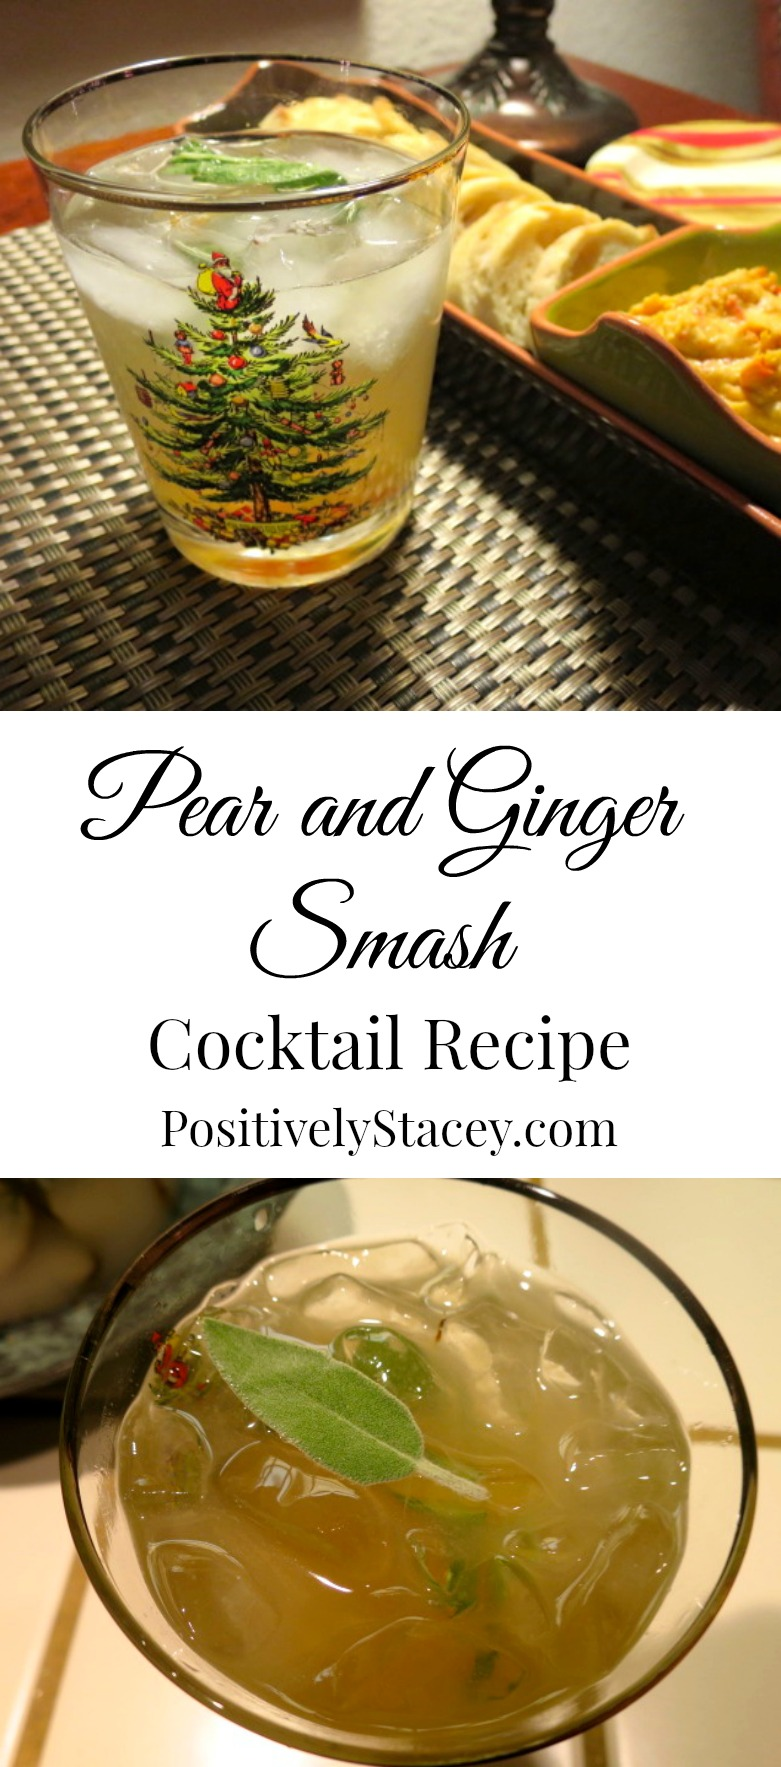 Pear and Ginger Smash Cocktail Recipe - This is a wonderful cocktail for the holidays! Simply delicious and easy to make.